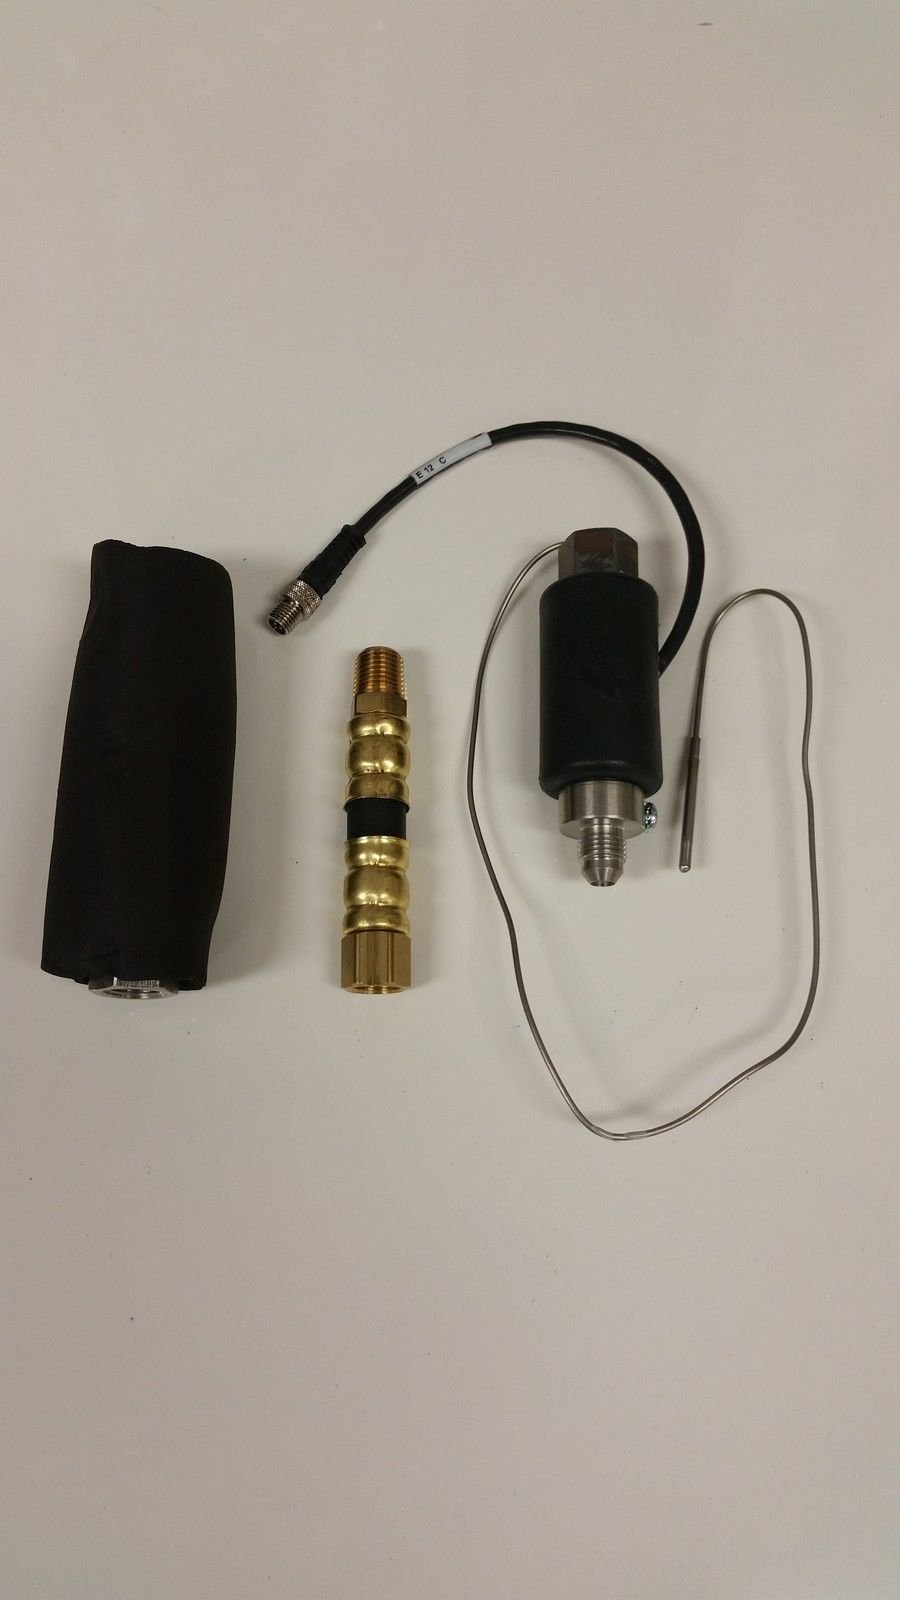 Fluid Temperature Sensor FTS with RTD 24K207 by Graco